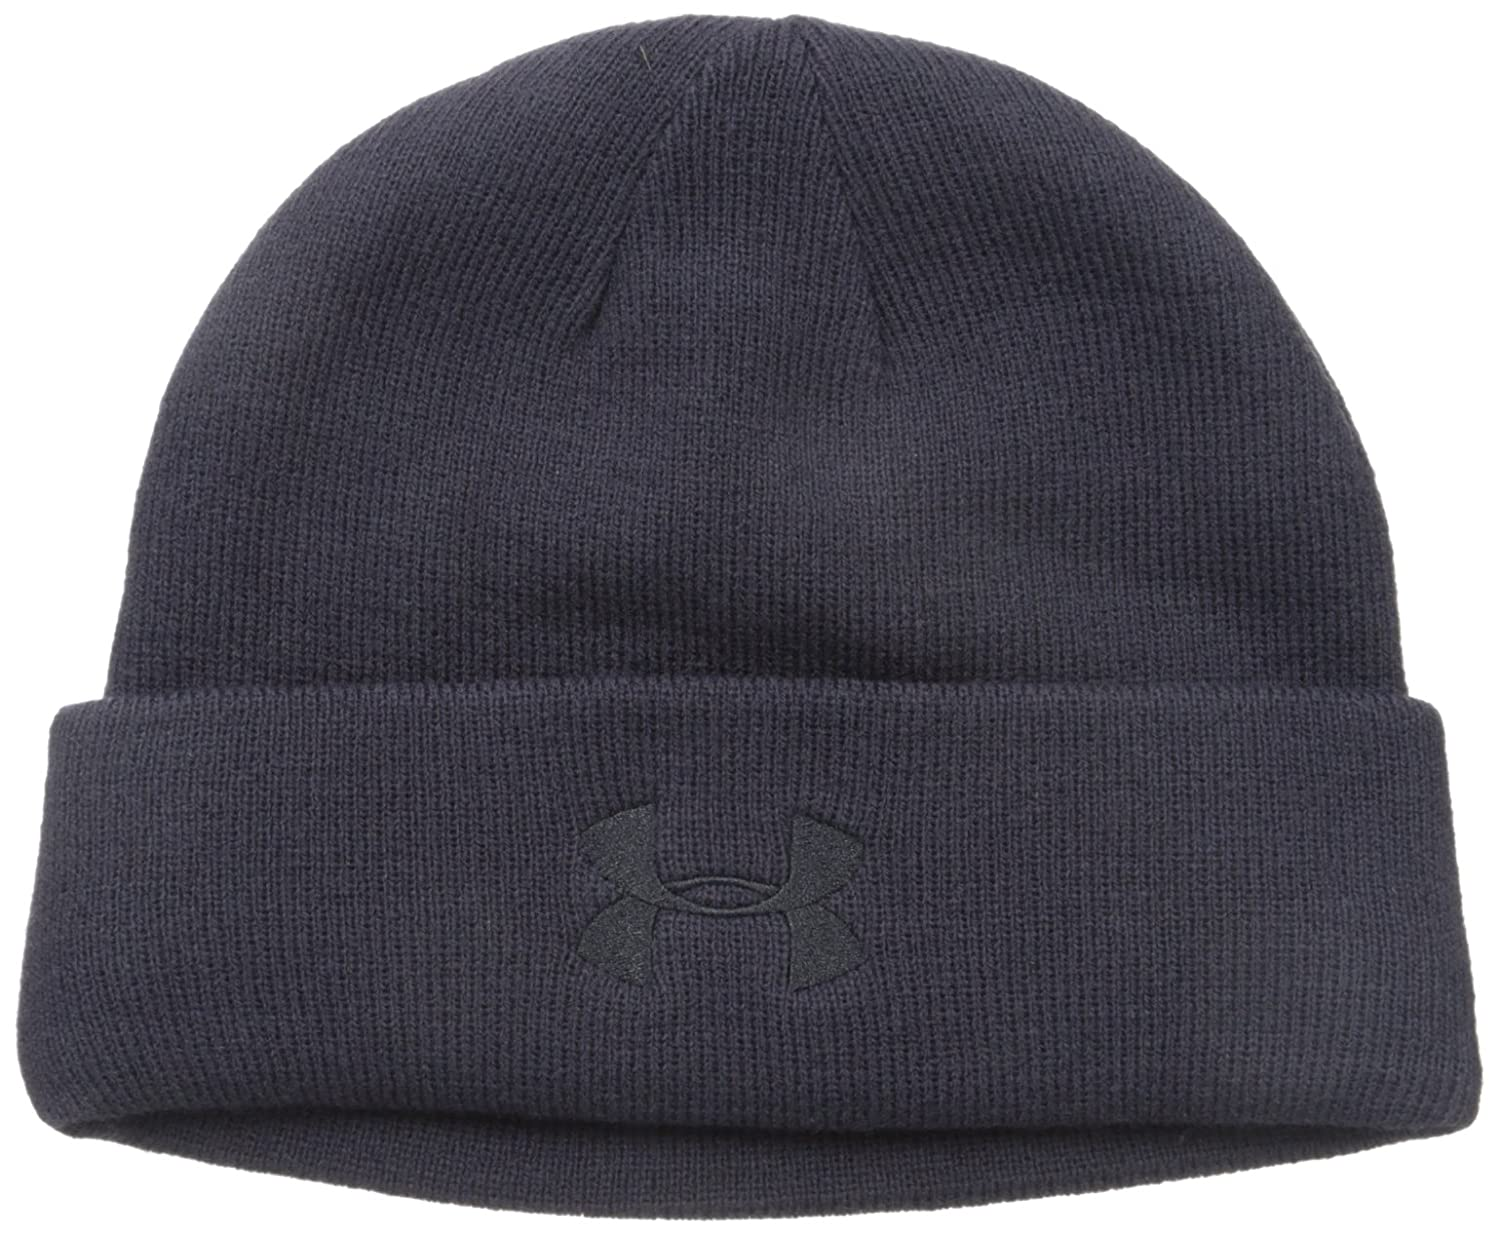 Under Armour Men's Tactical Stealth Beanie, Dark Navy Blue (465)/Dark Navy Blue, One Size Under Armour Accessories 1219736